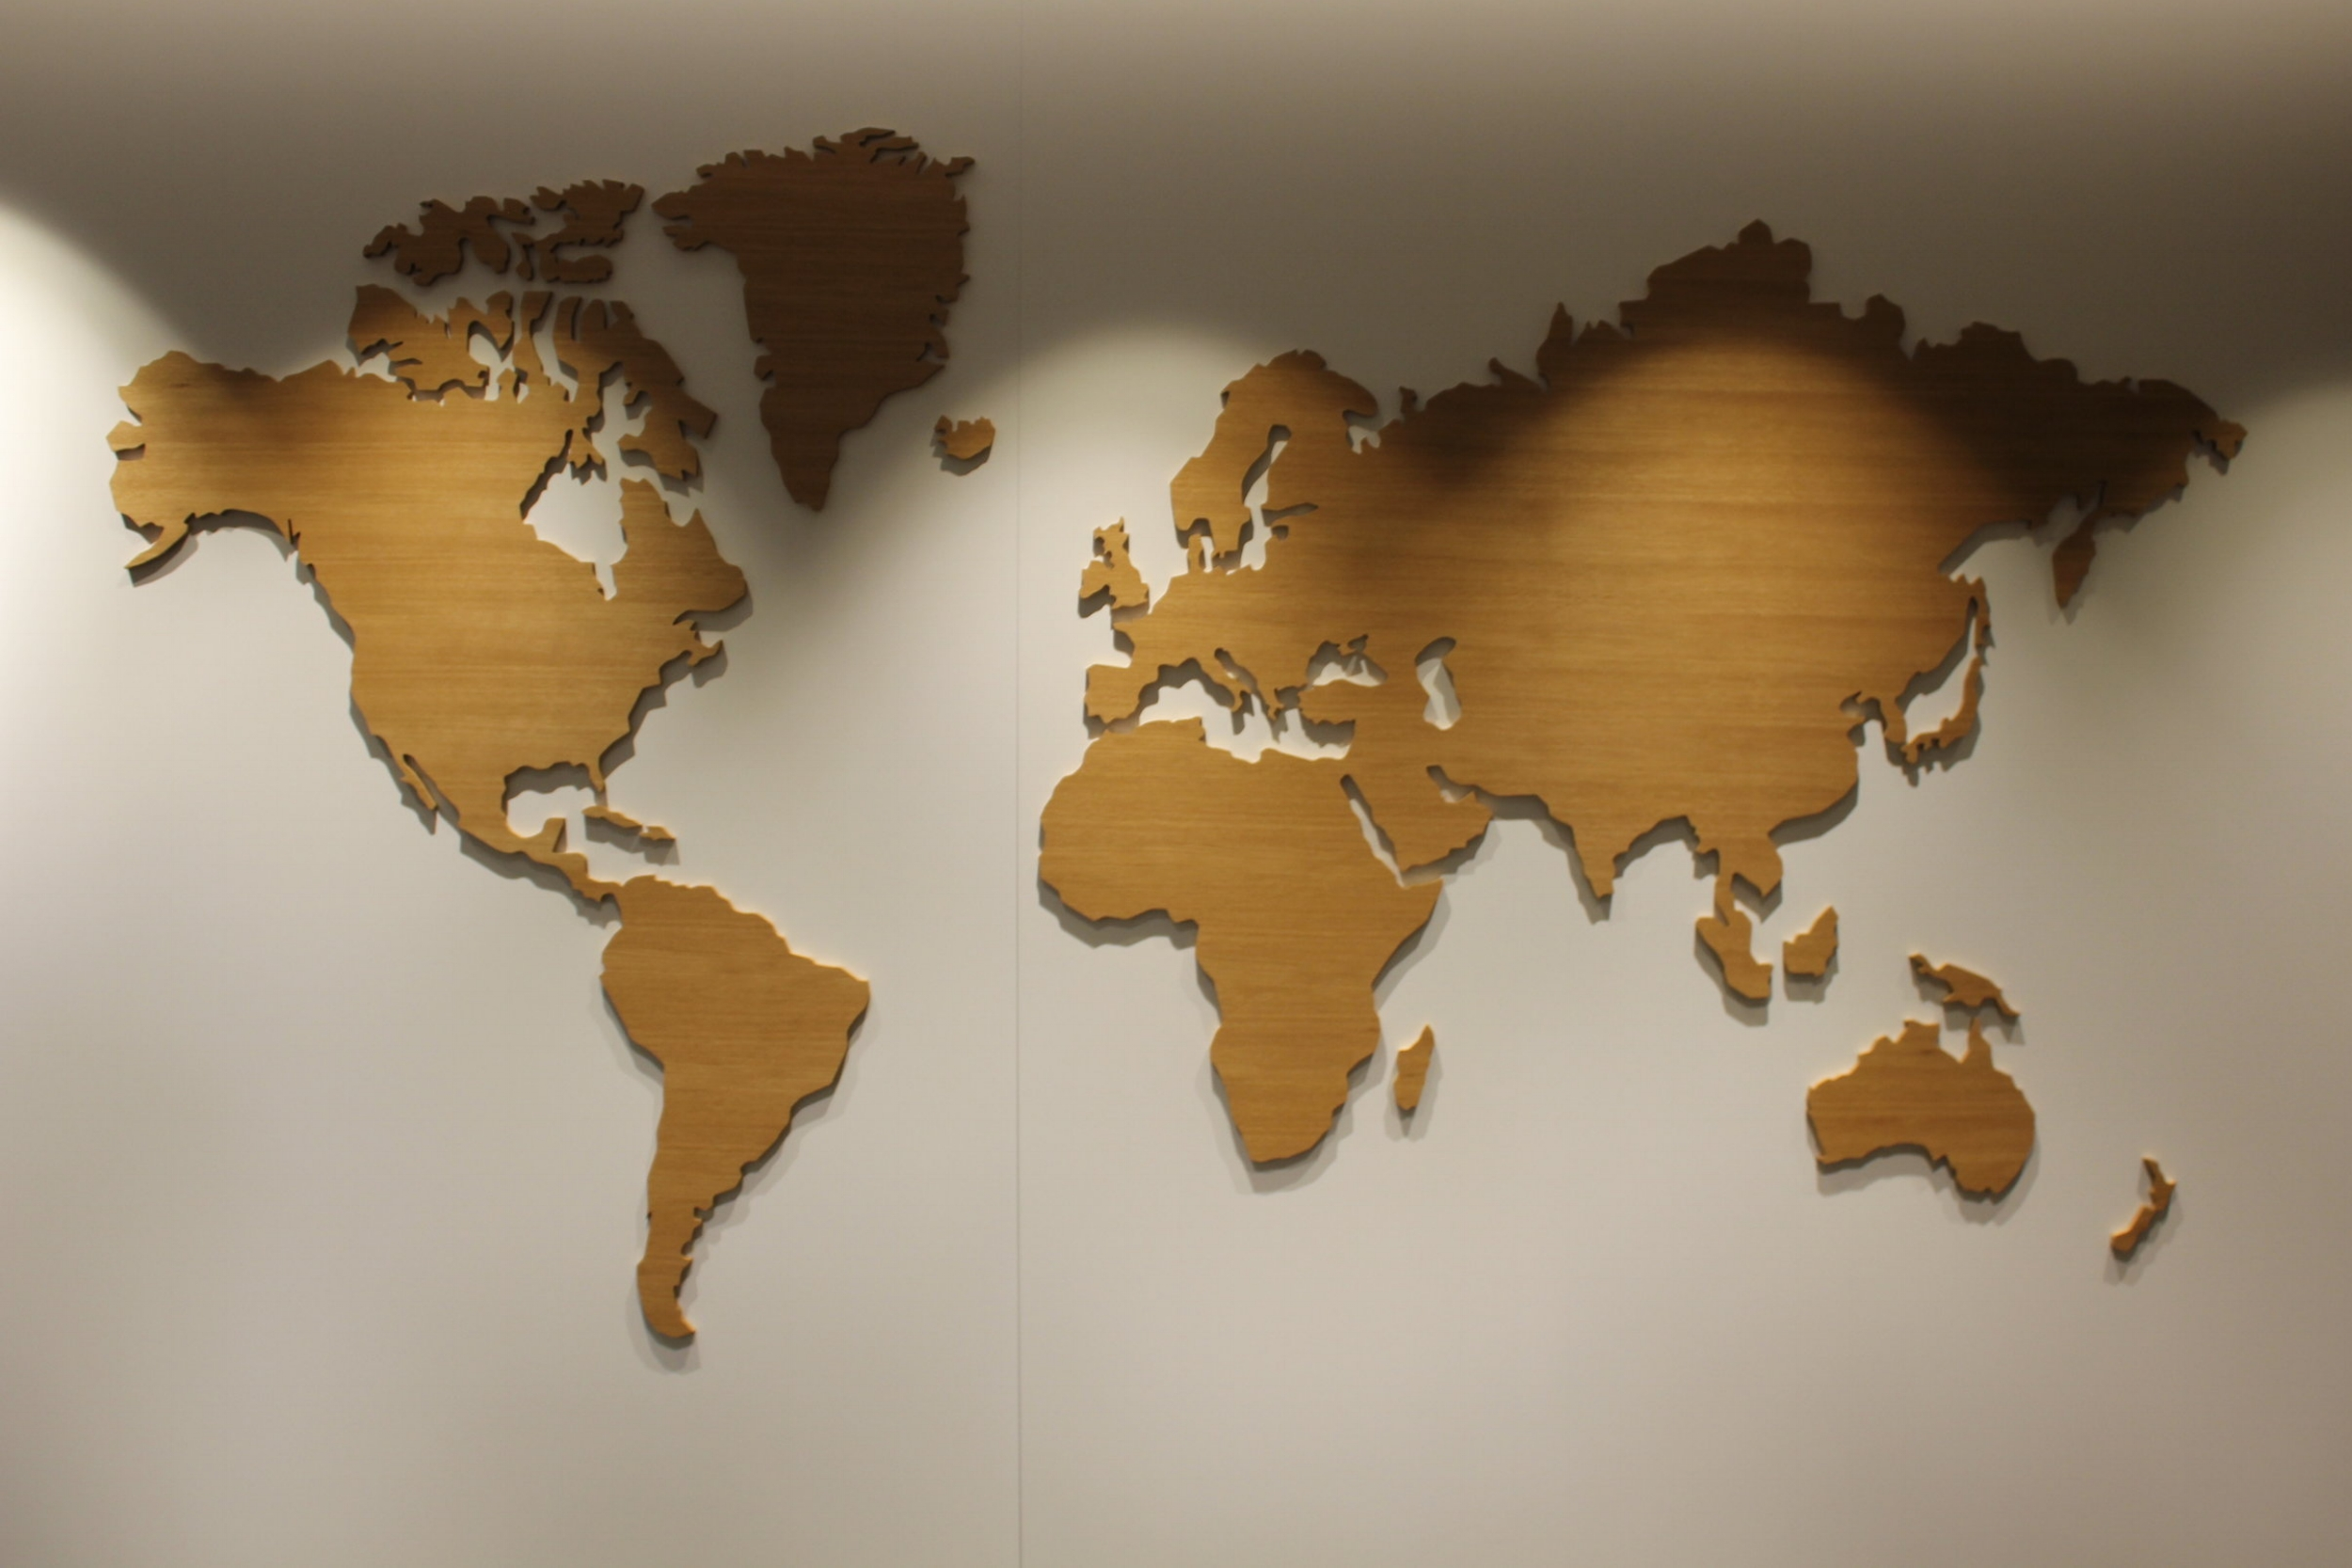 Swiss Senator Lounge Zurich – World map